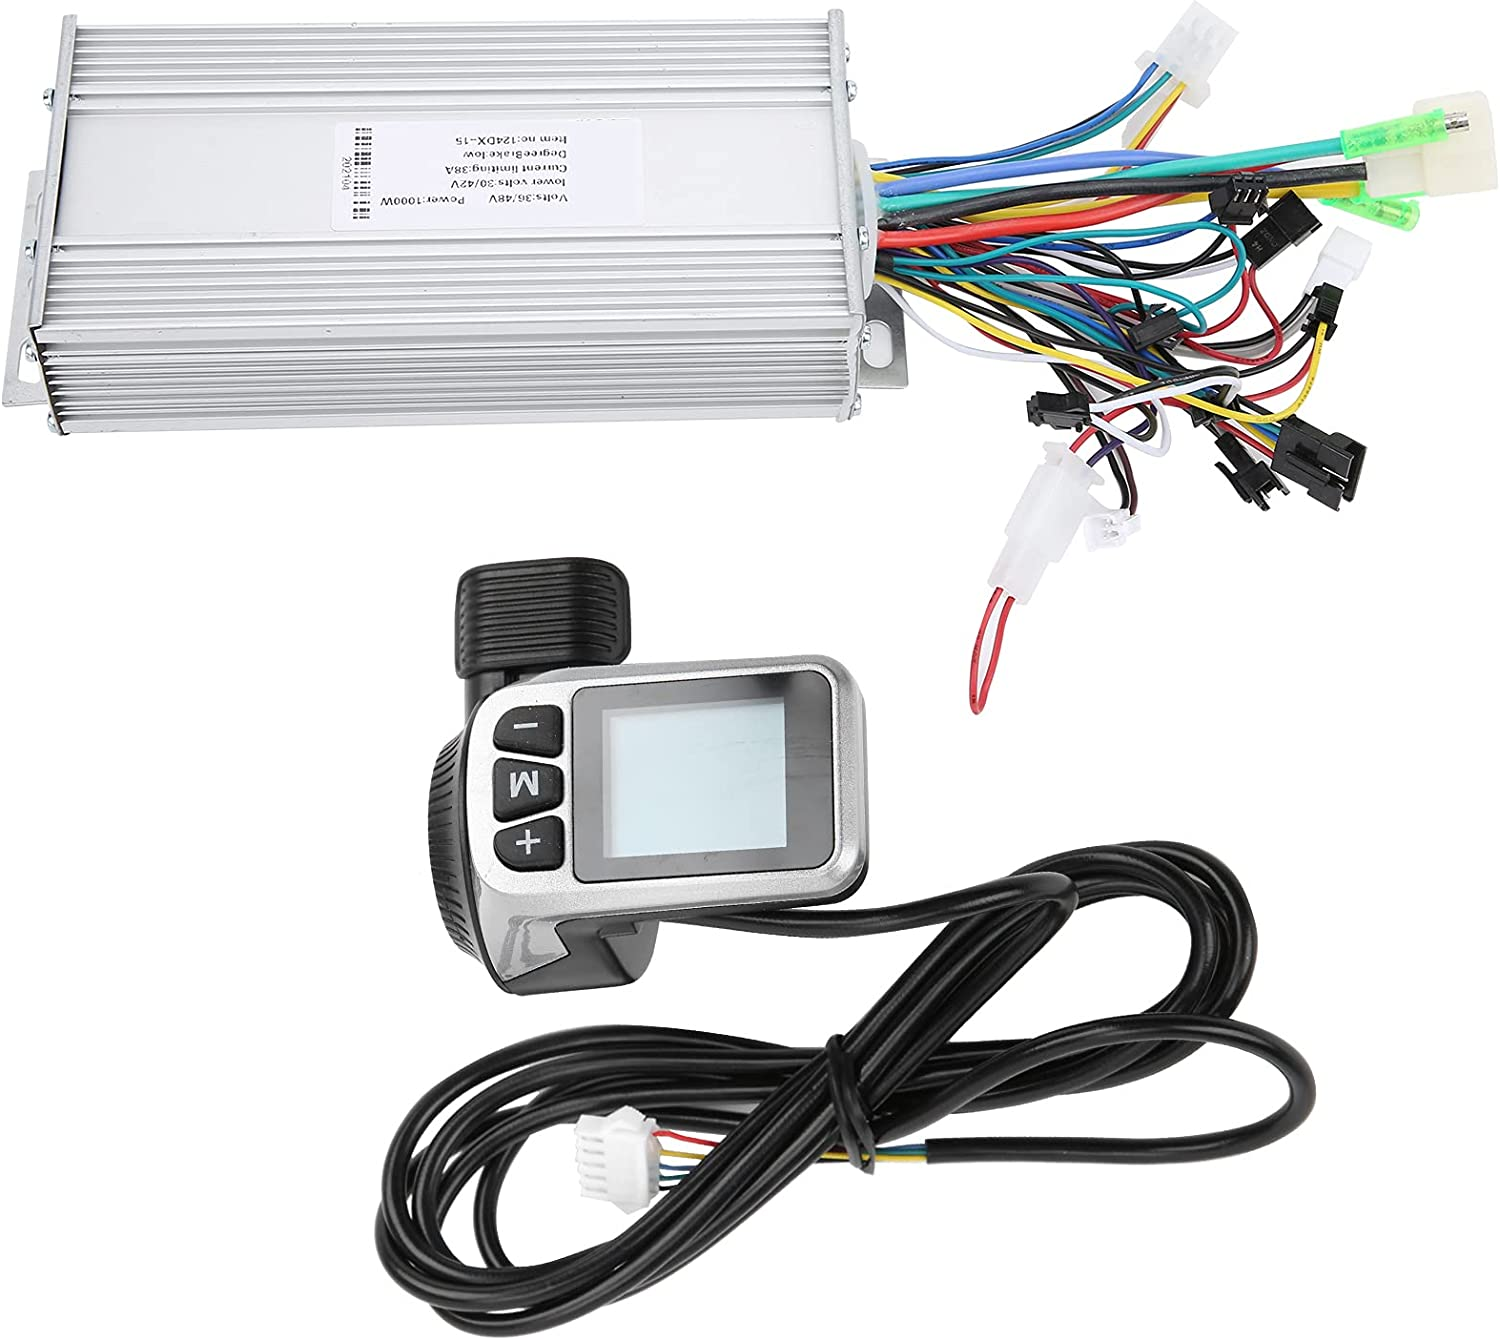 New life RiToEasysports Colorado Springs Mall 36V 48V 1000W Brushless LCD Motor with Controller